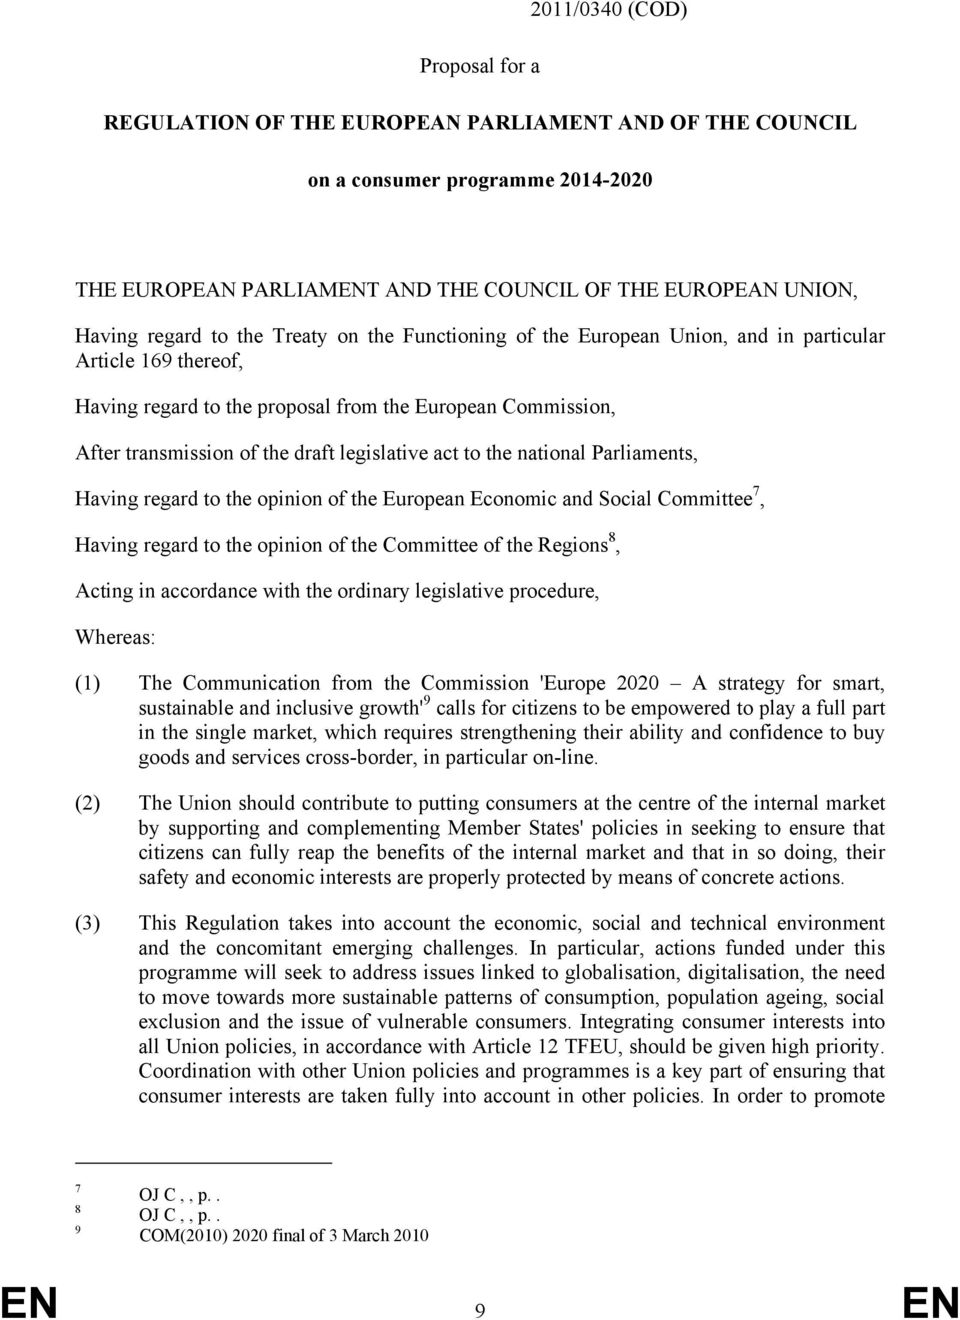 act to the national Parliaments, Having regard to the opinion of the European Economic and Social Committee 7, Having regard to the opinion of the Committee of the Regions 8, Acting in accordance